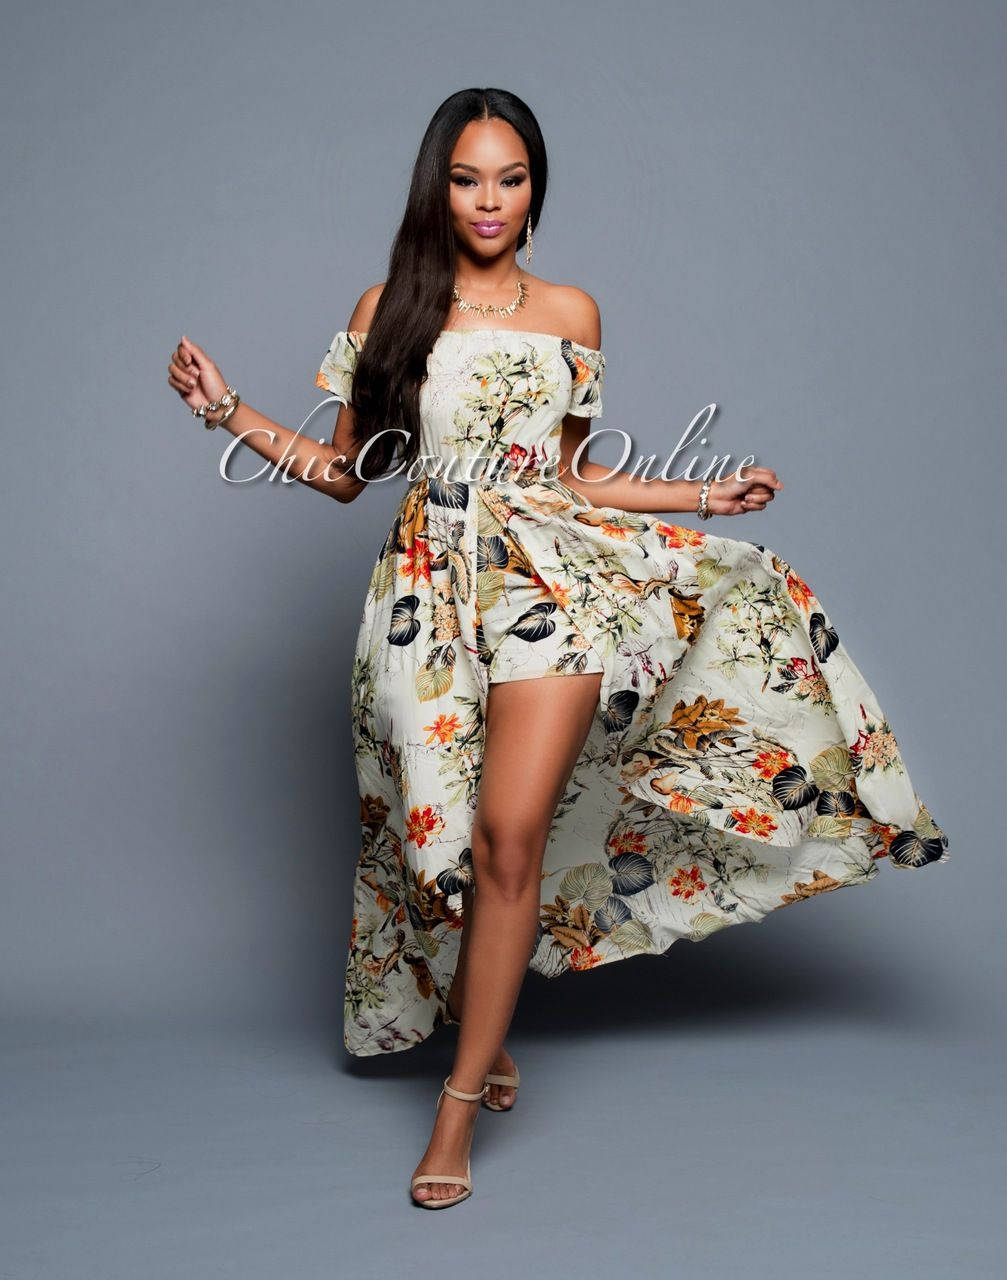 Chic Couture Online - Vergara Beige Multi-Color Floral Romper Maxi Dress, $65.00 (http://www.chiccoutureonline.com/vergara-beige-multi-color-floral-romper-maxi-dress/)